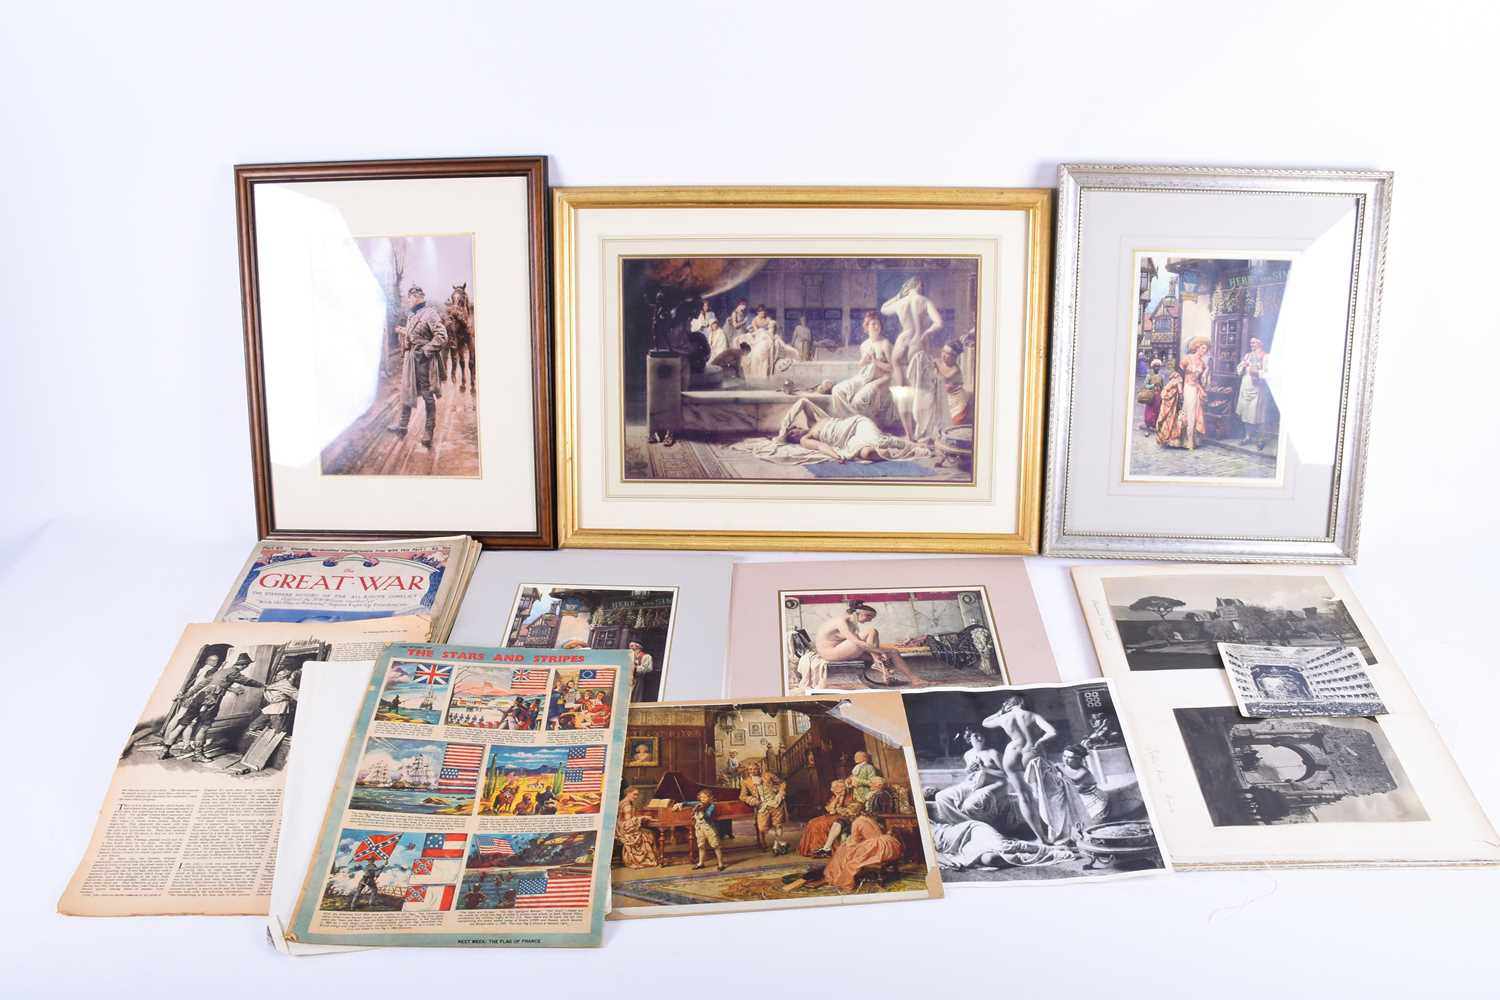 Lot 54 - A quantity of archive material relating to the life and work of celebrated artist Fortunino